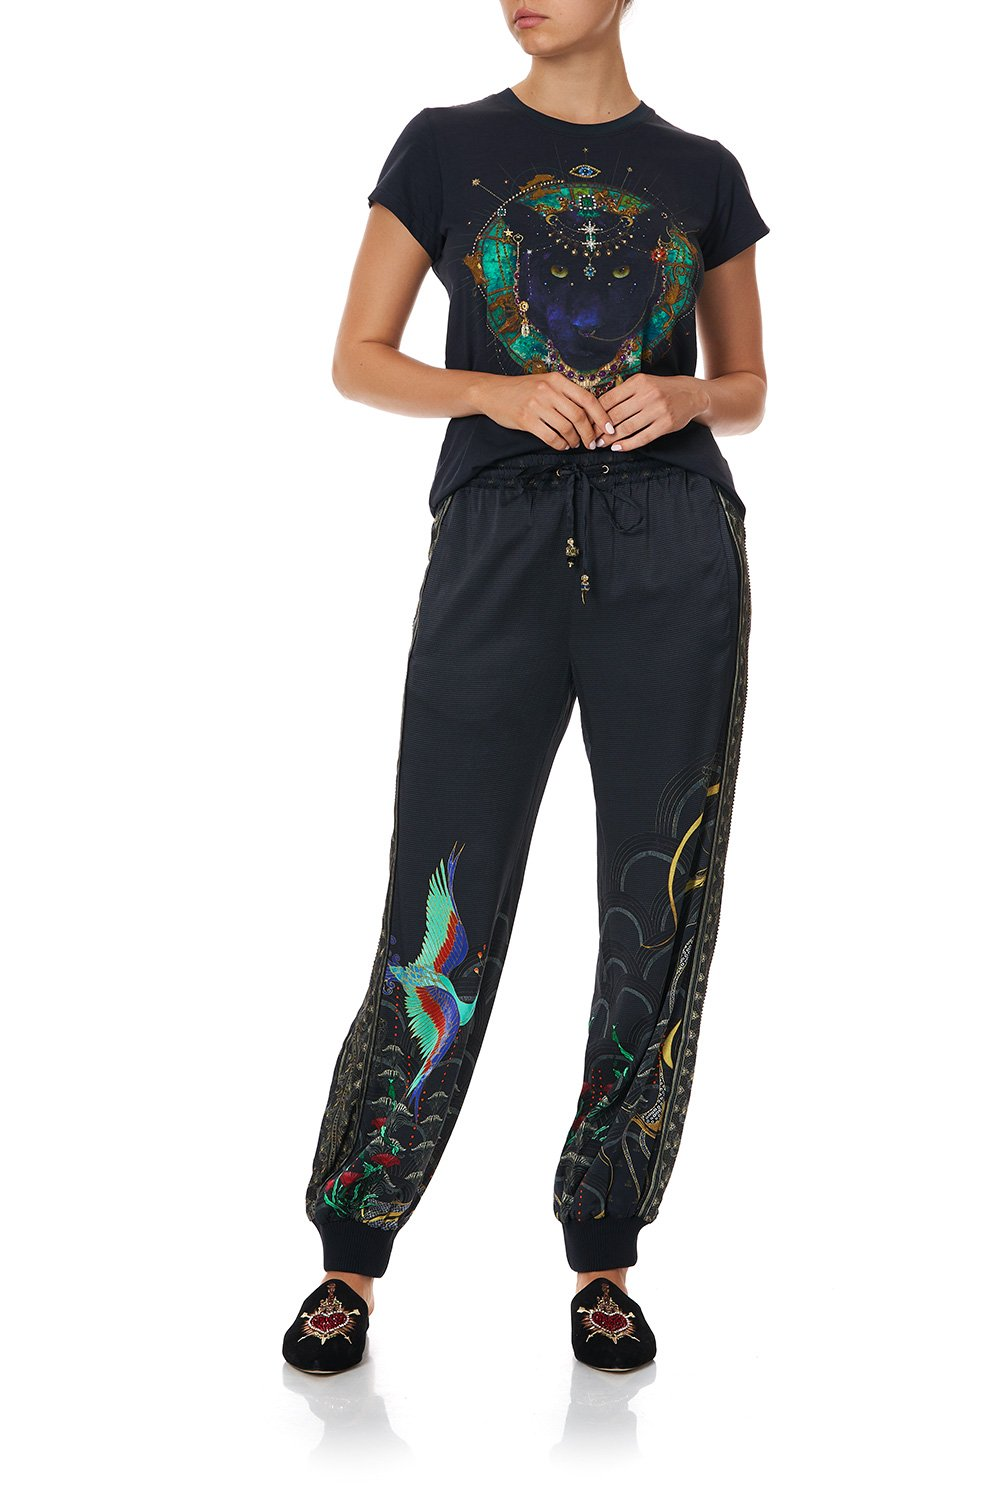 PANELLED DRAWSTRING TROUSER WISE WINGS